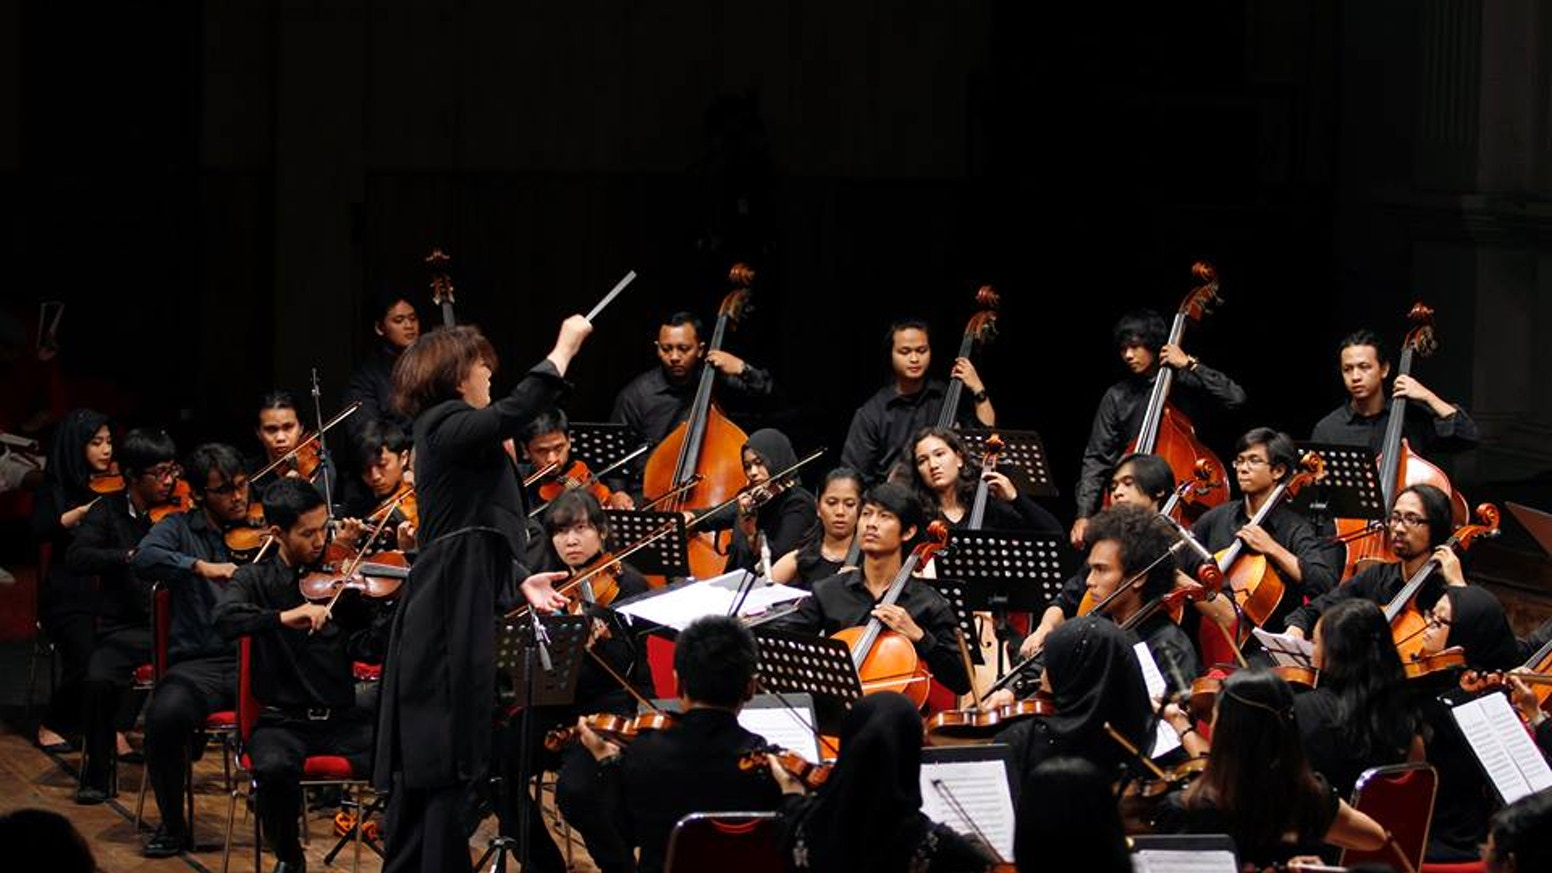 IYSO Orchestra Academy & Symphonic Concert 2016 by Indonesian Youth